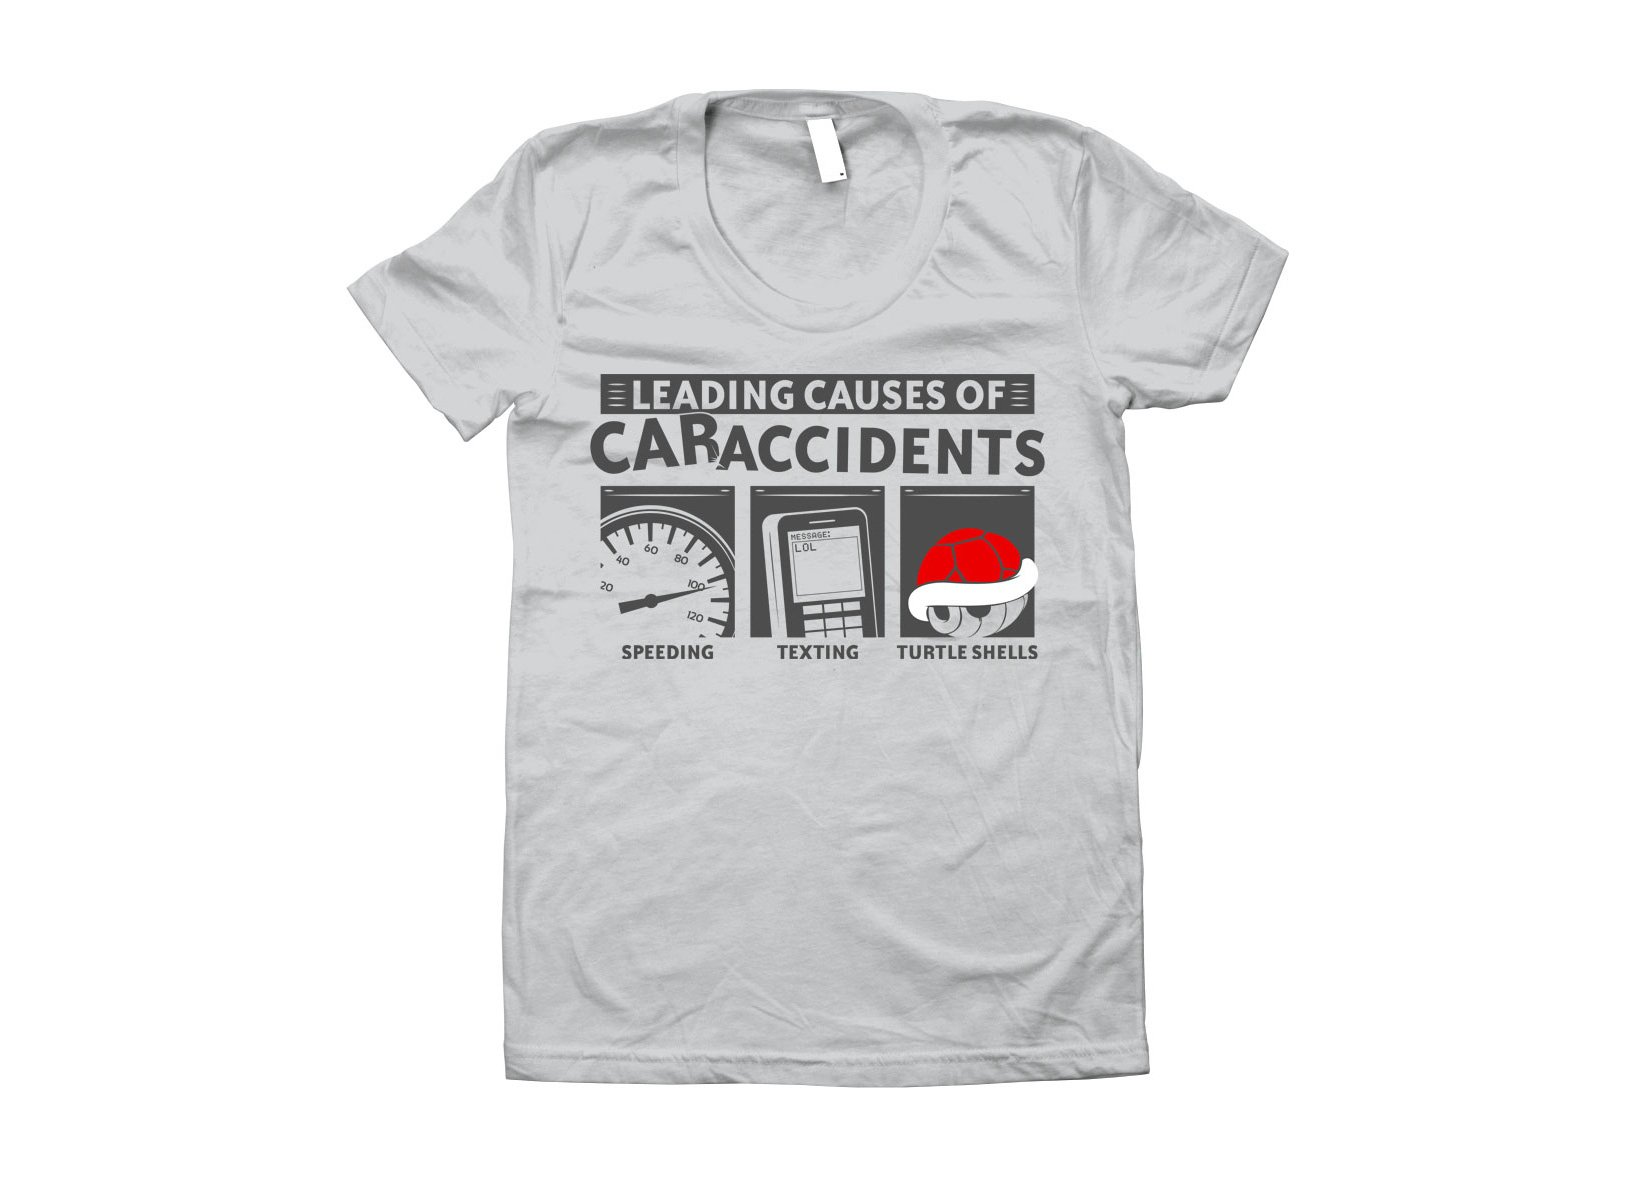 Leading Causes of Accidents on Juniors T-Shirt